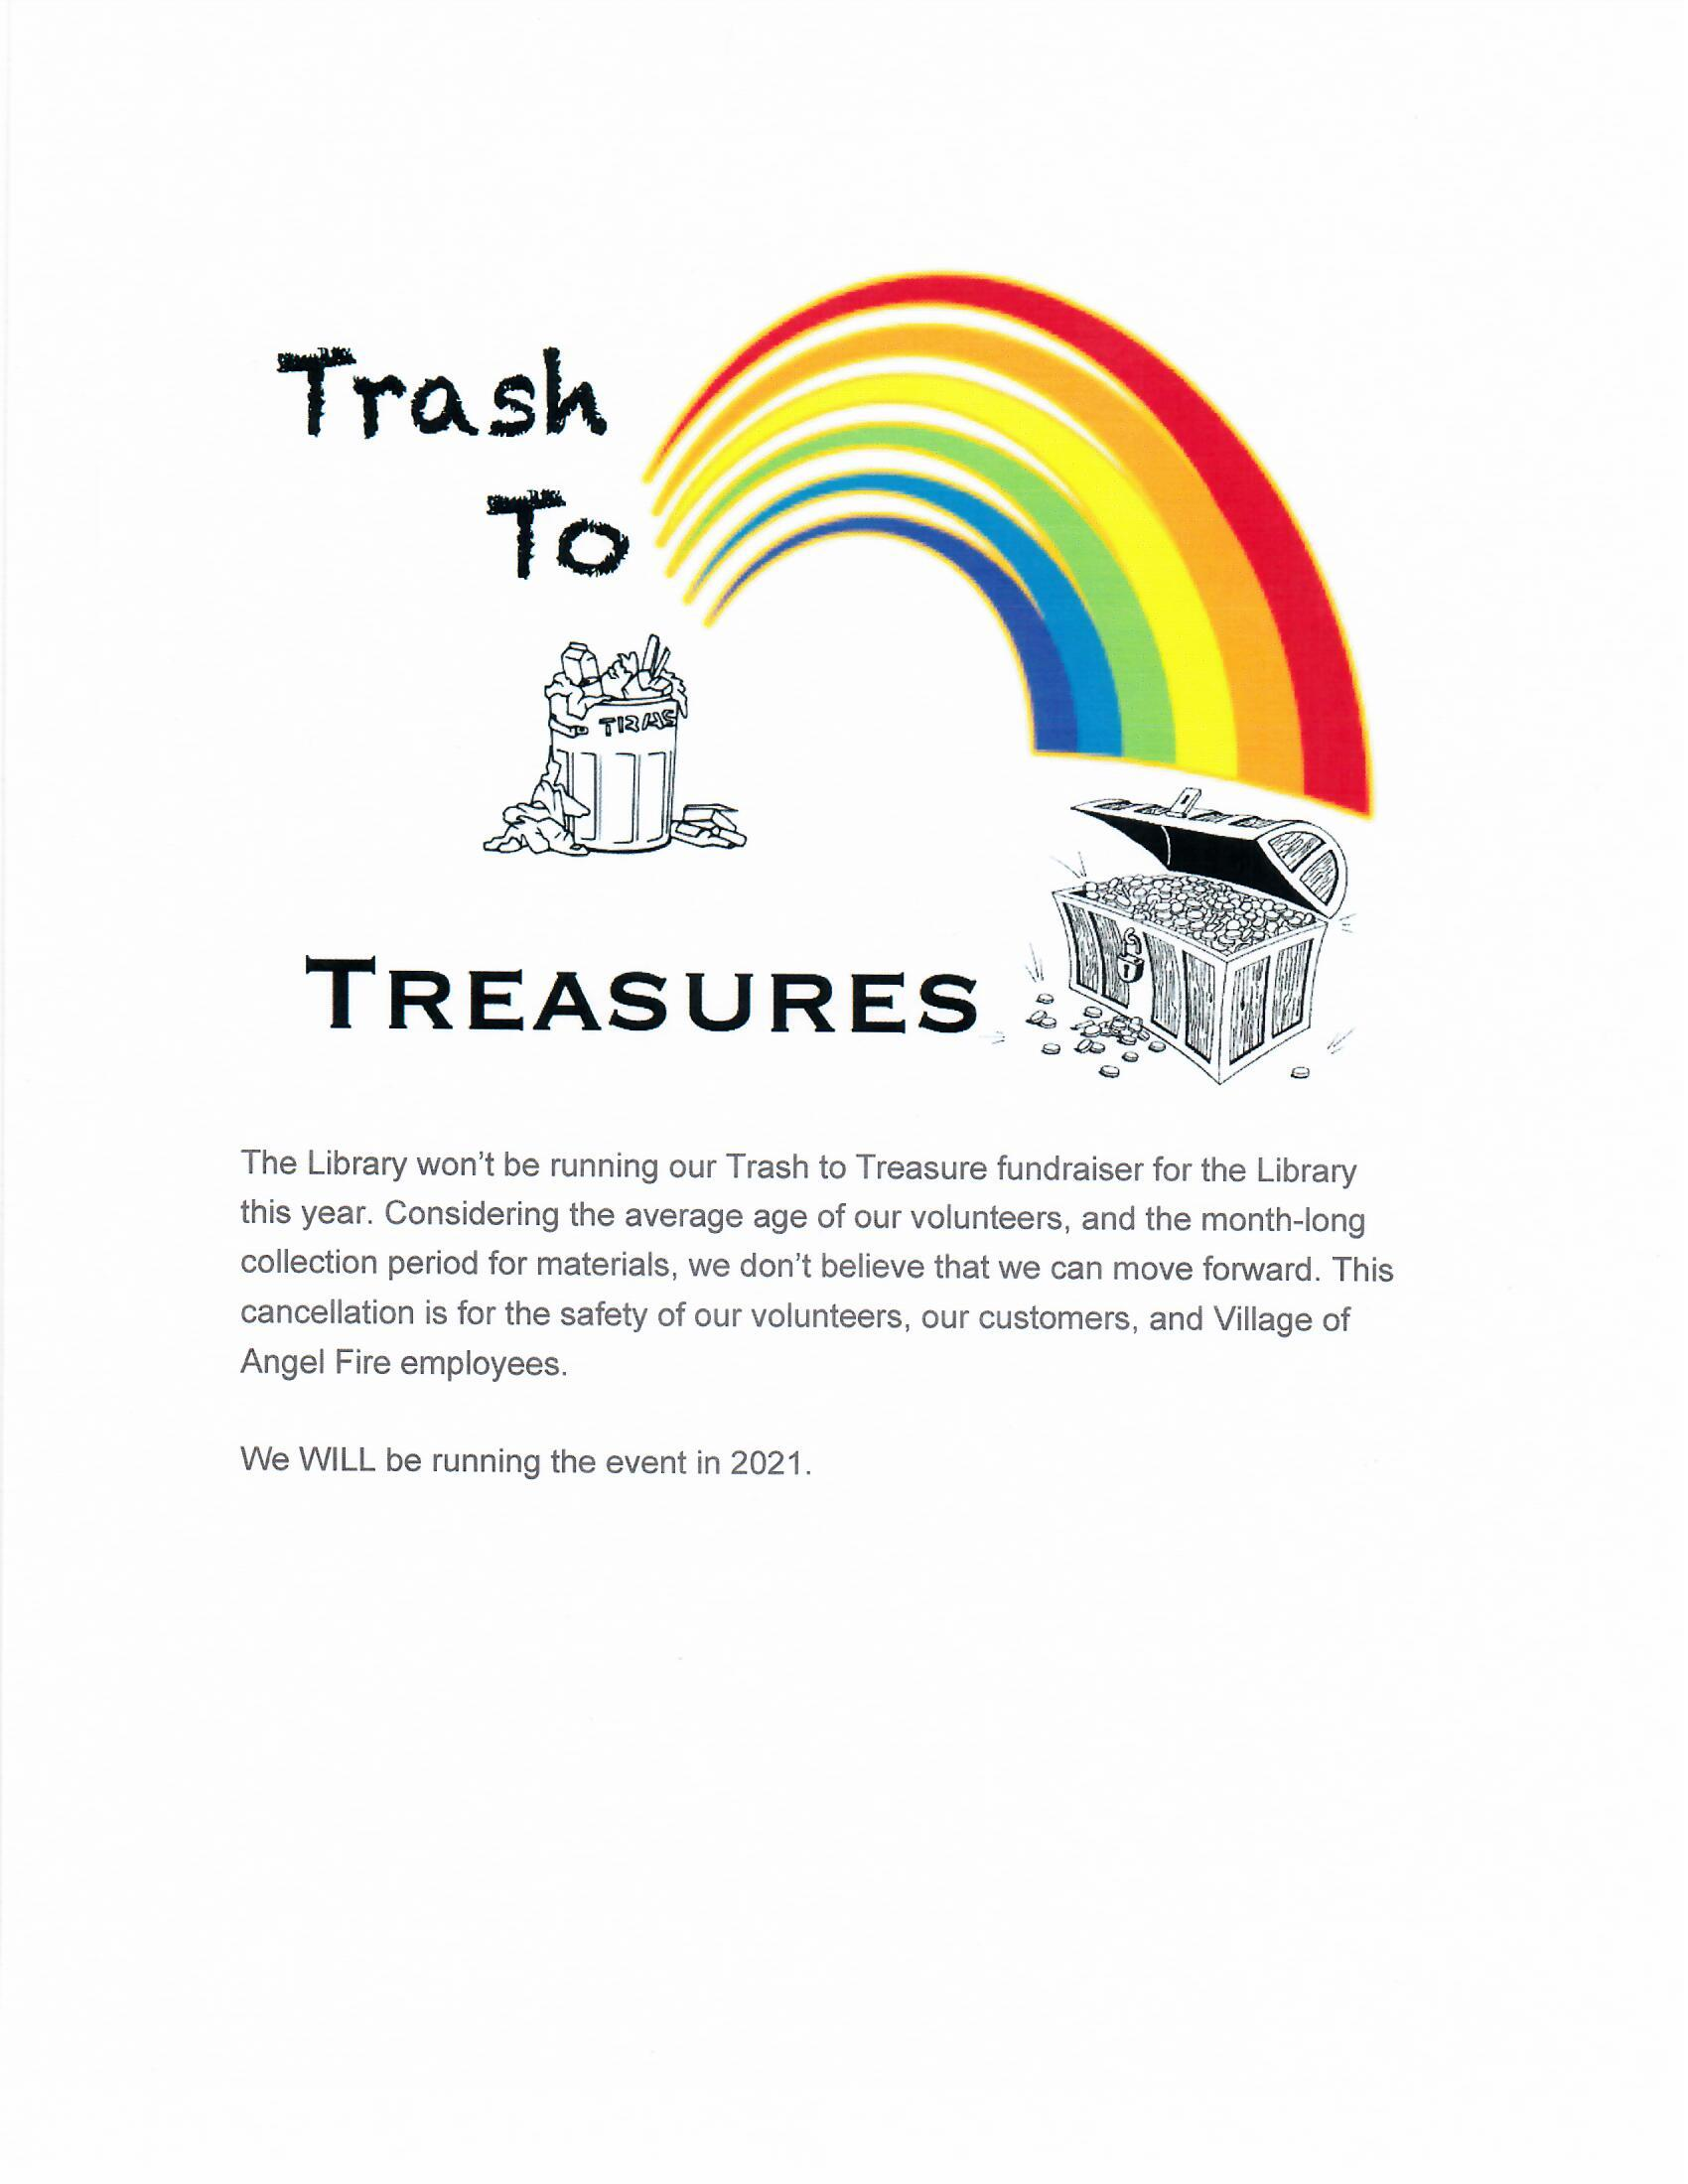 Cancellation of Trash to Treasures for 2020